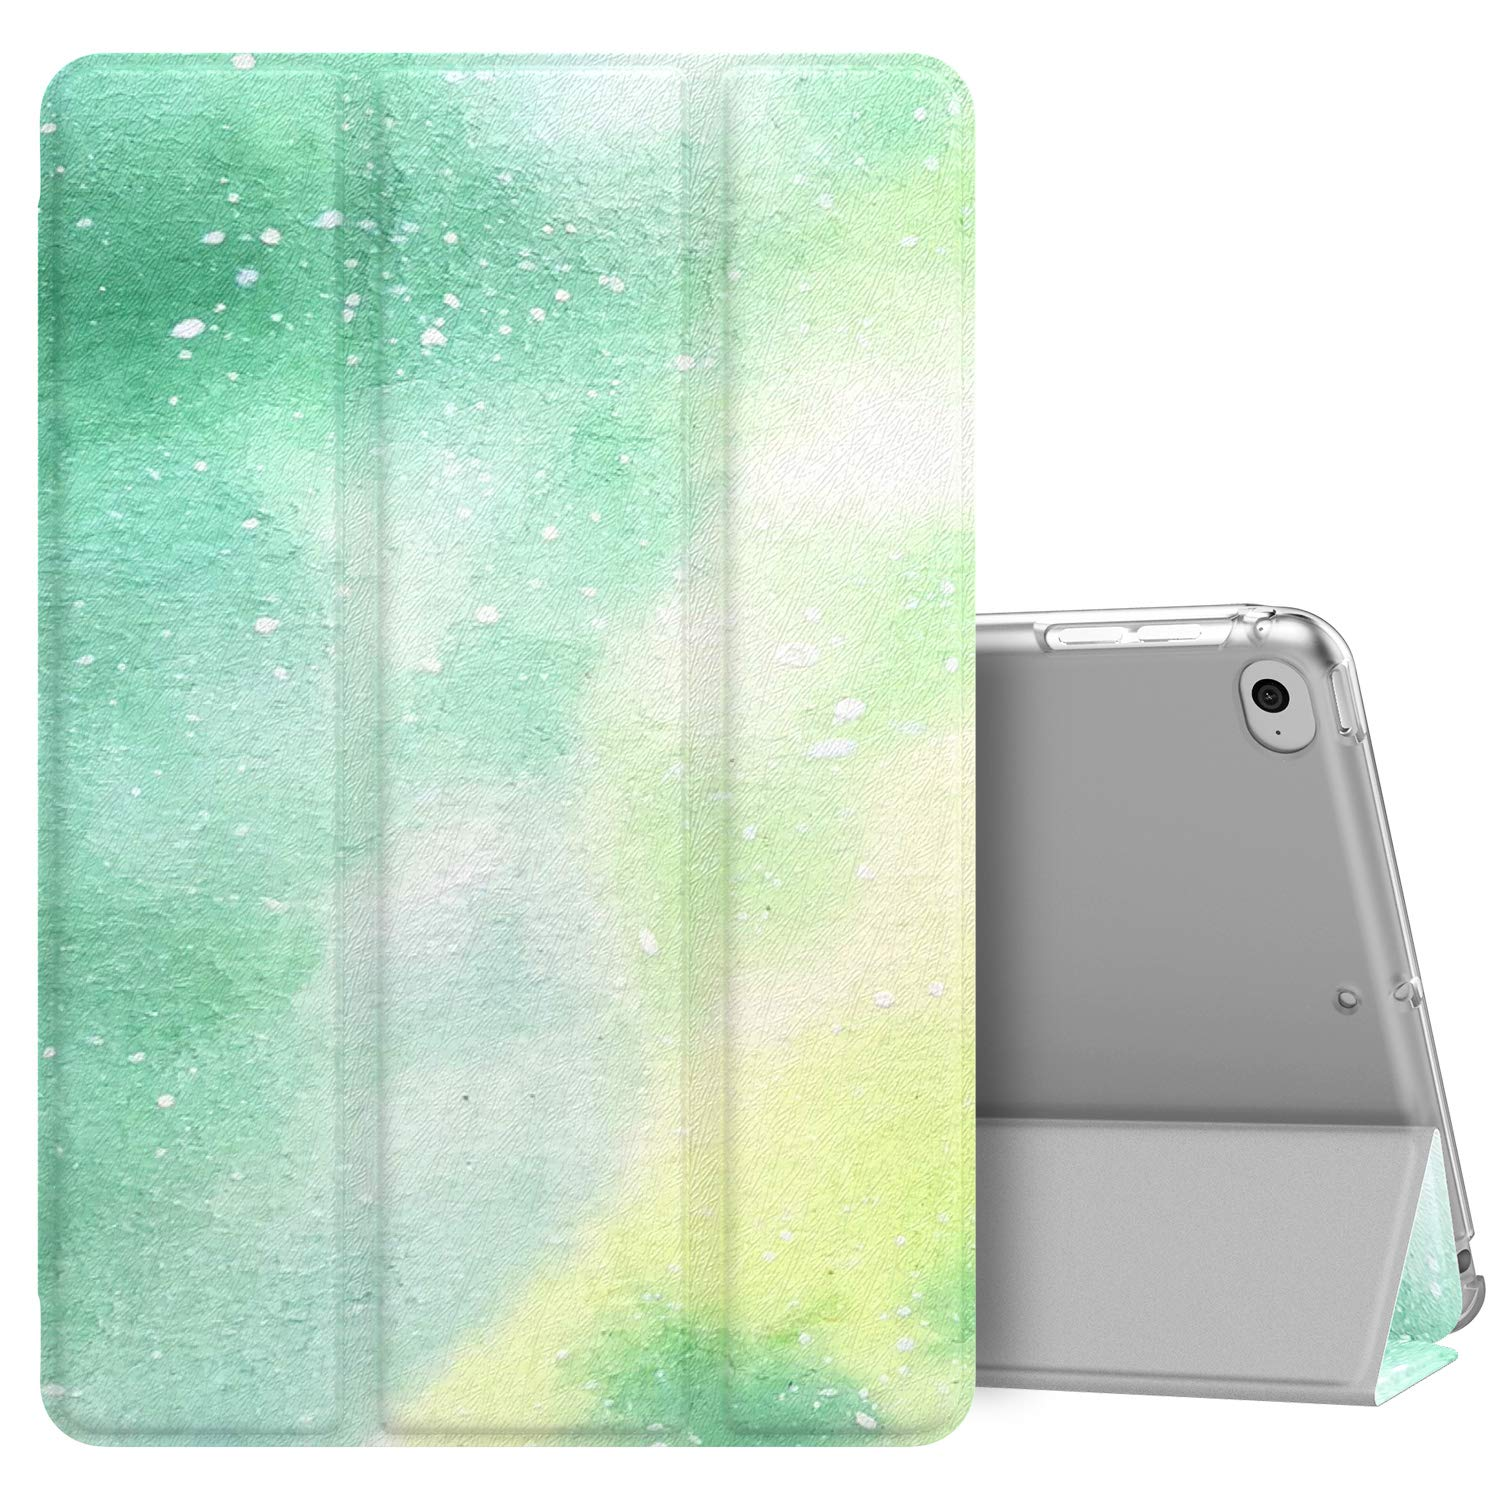 MoKo Case Fit New iPad Mini 5 2019 (5th Generation 7.9 inch), Slim Lightweight Smart Shell Stand Cover with Translucent Frosted Back Protector, with Auto Wake/Sleep - Dream Green